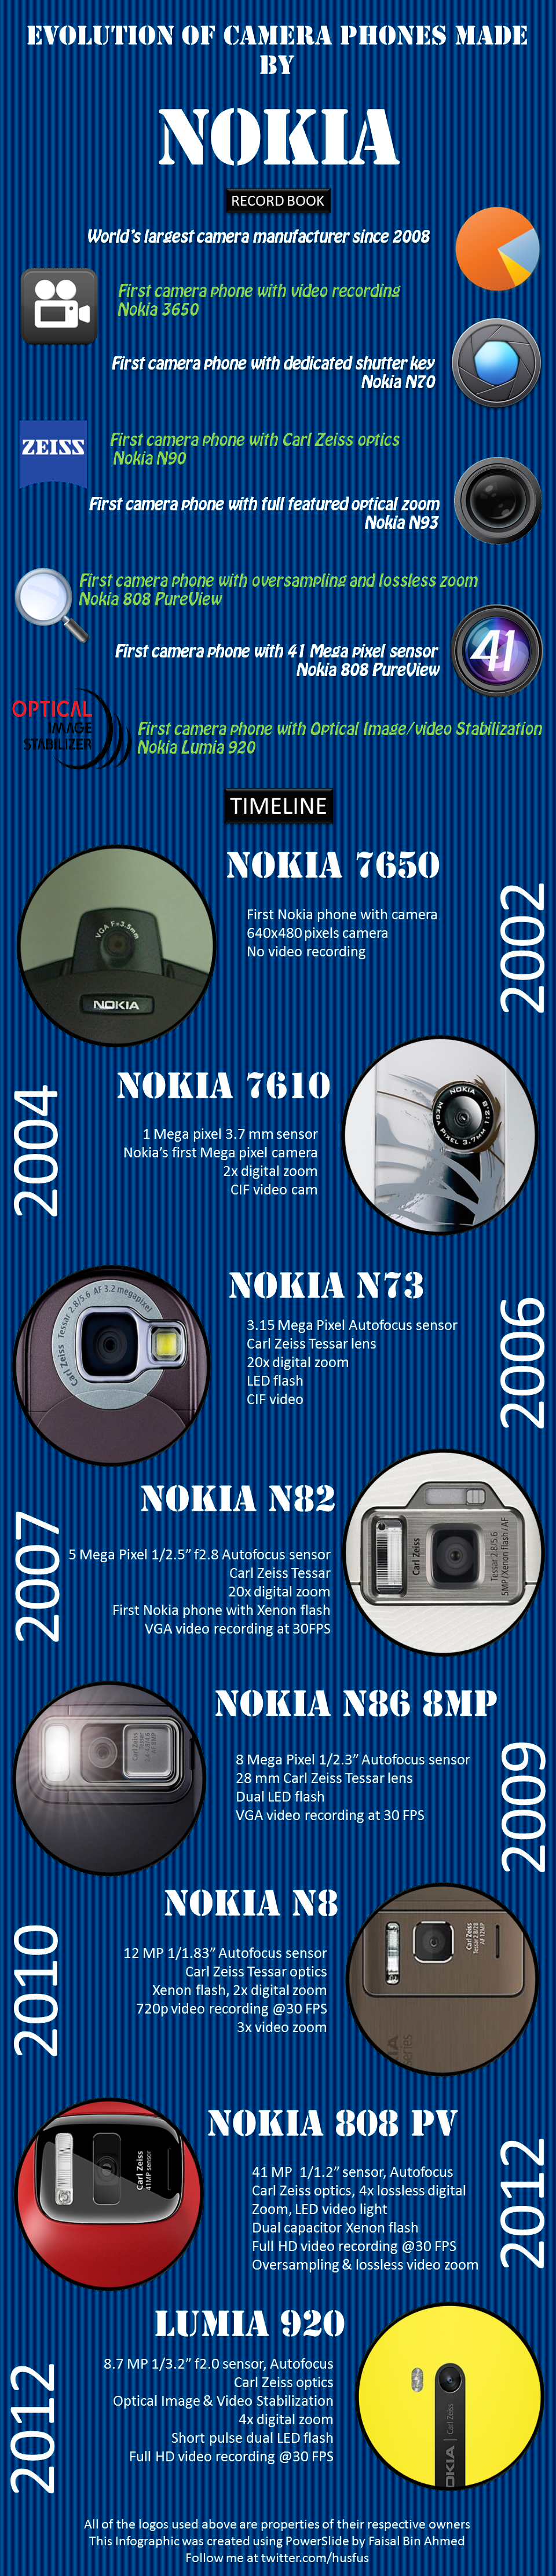 Nokia firsts/timeline